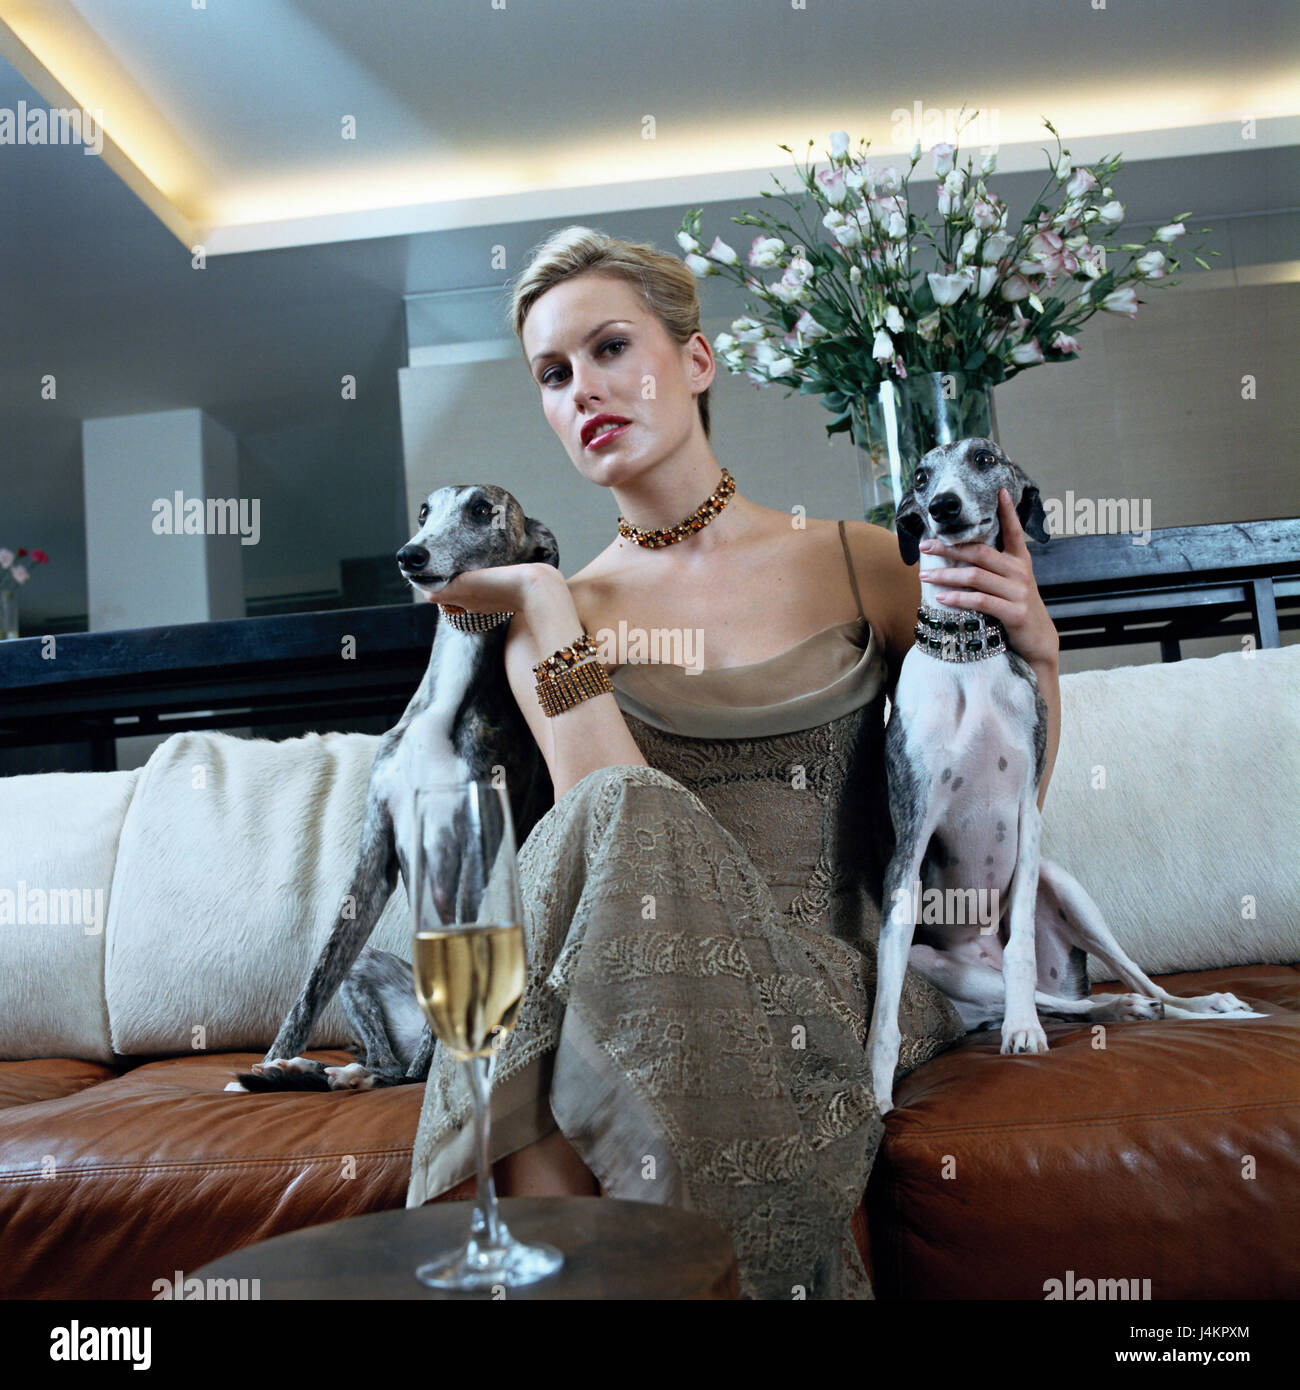 Living square, couch, woman, elegantly, dogs, whippets, stroke sitting room, festively, evening dress, Sparkling - Stock Image